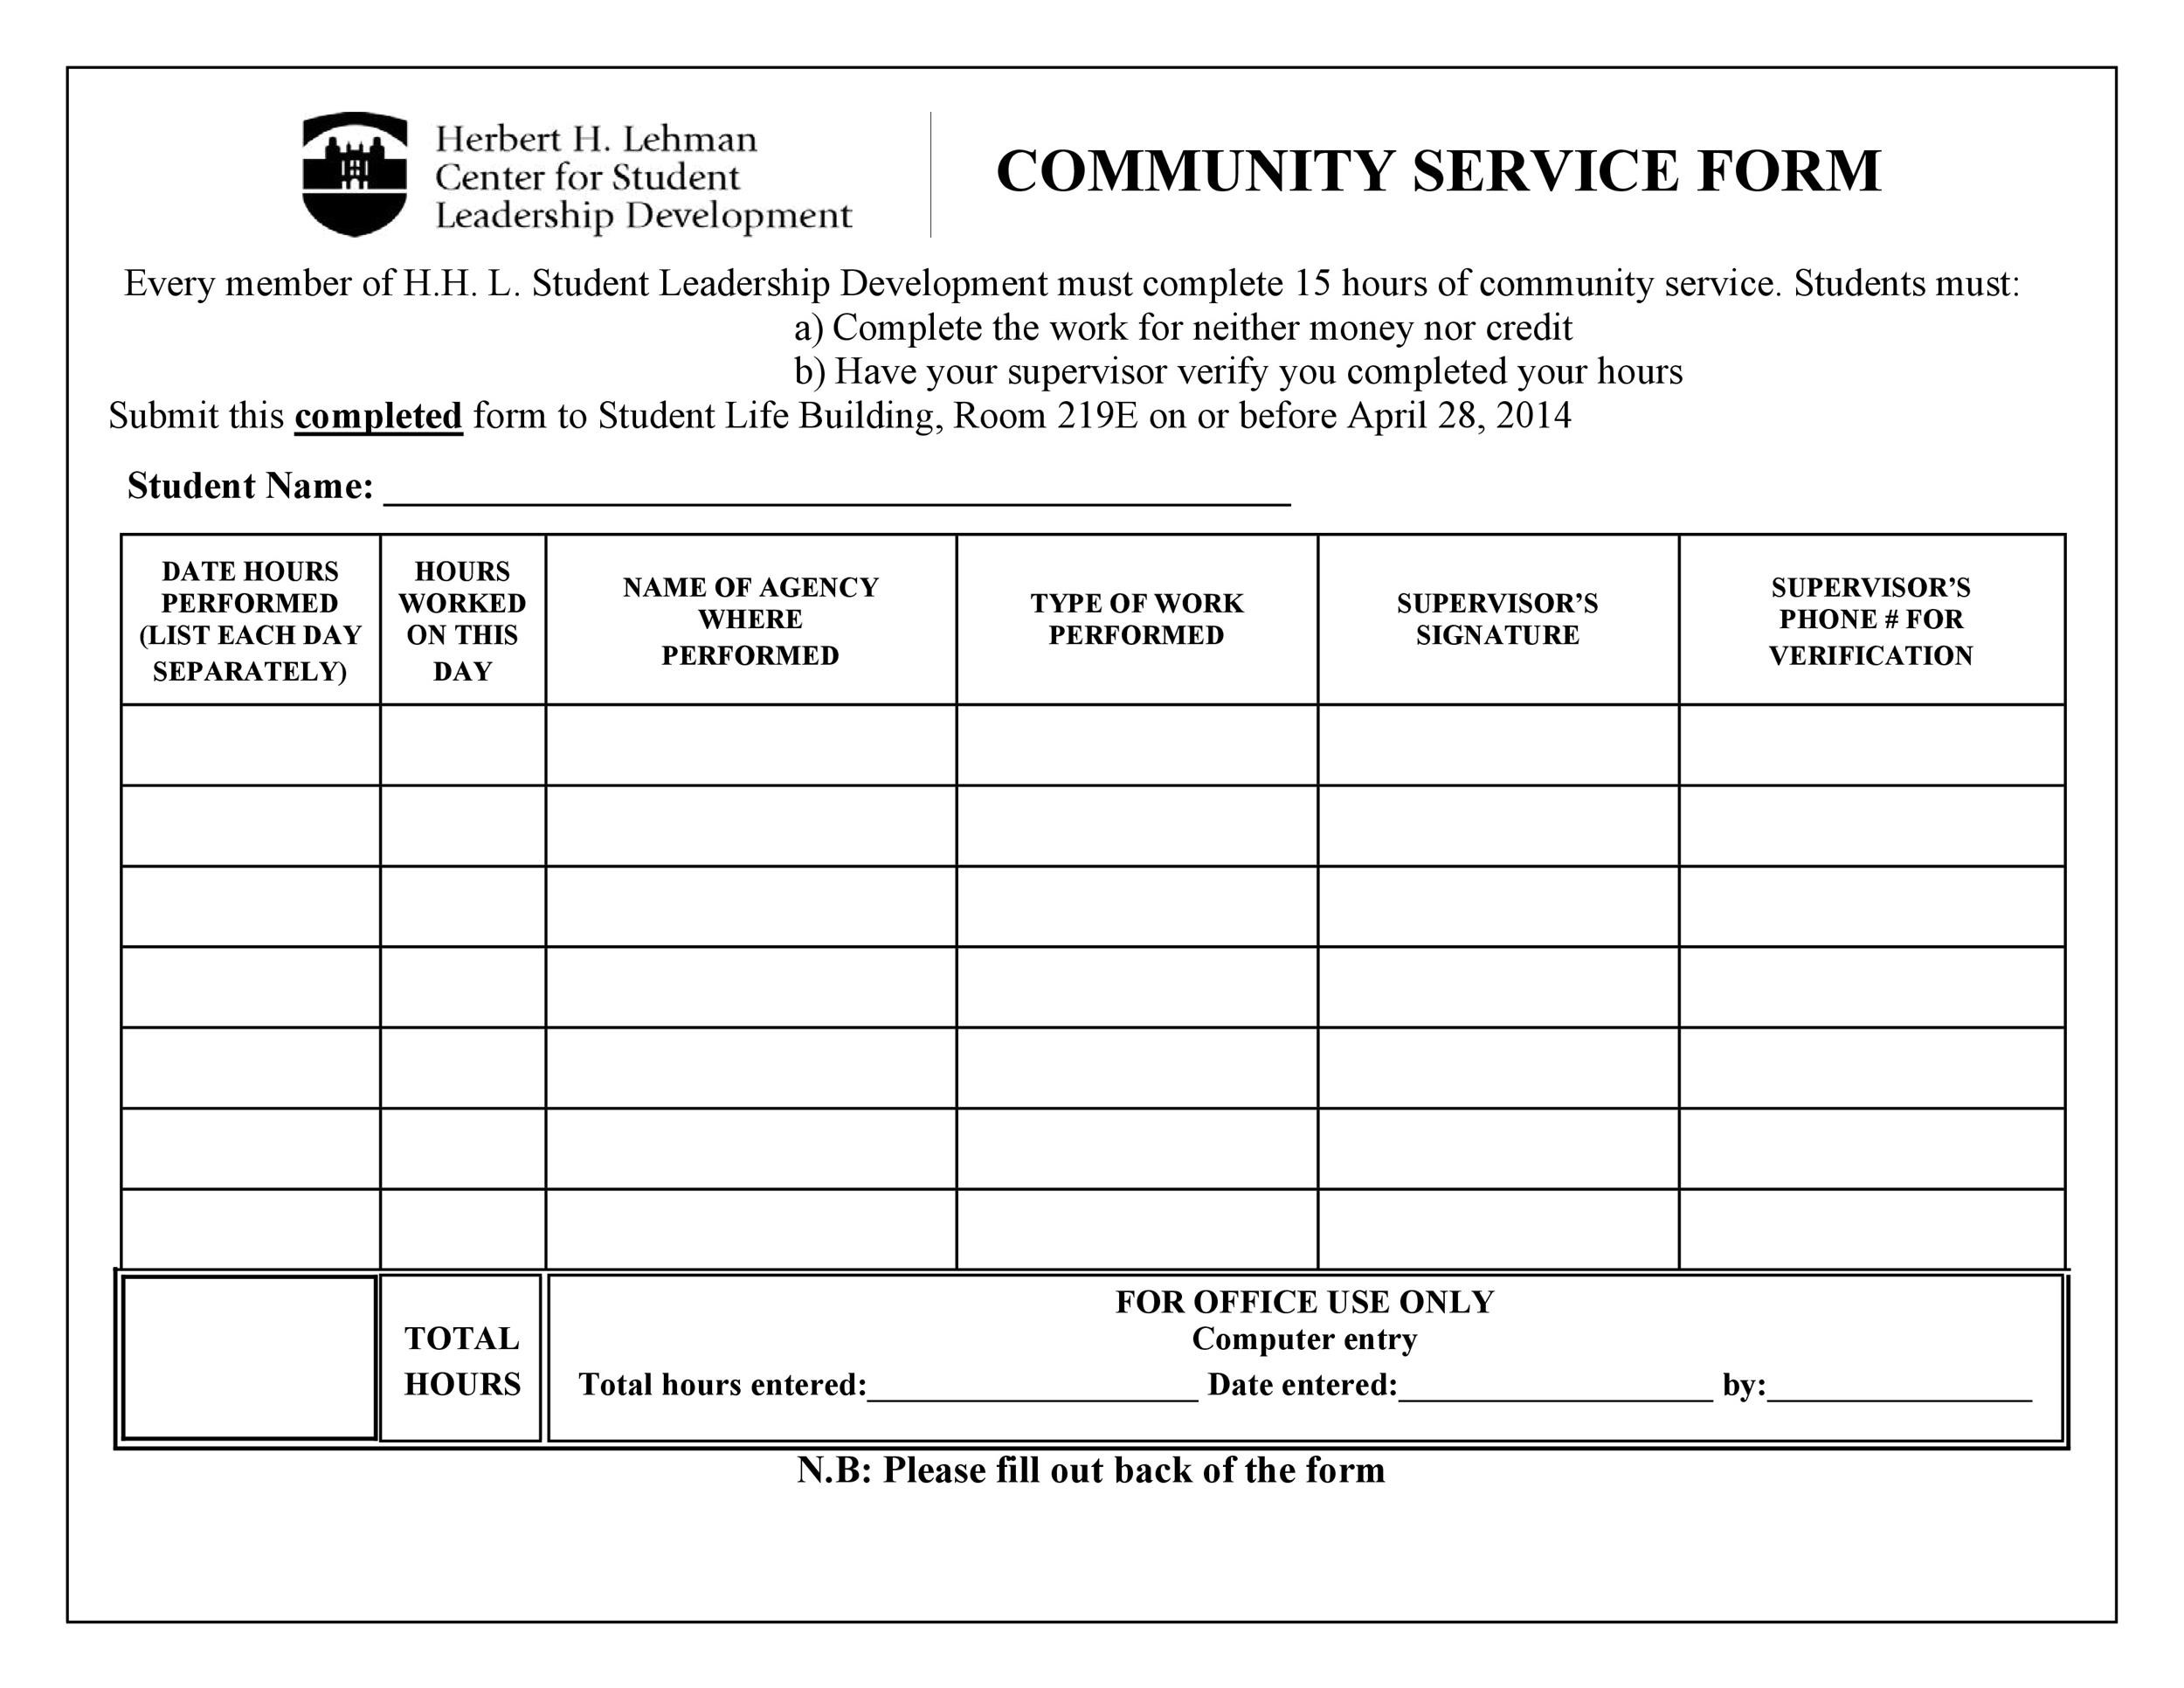 community service completion letter example community service letter 40 templates completion 22171 | community service letter template 24